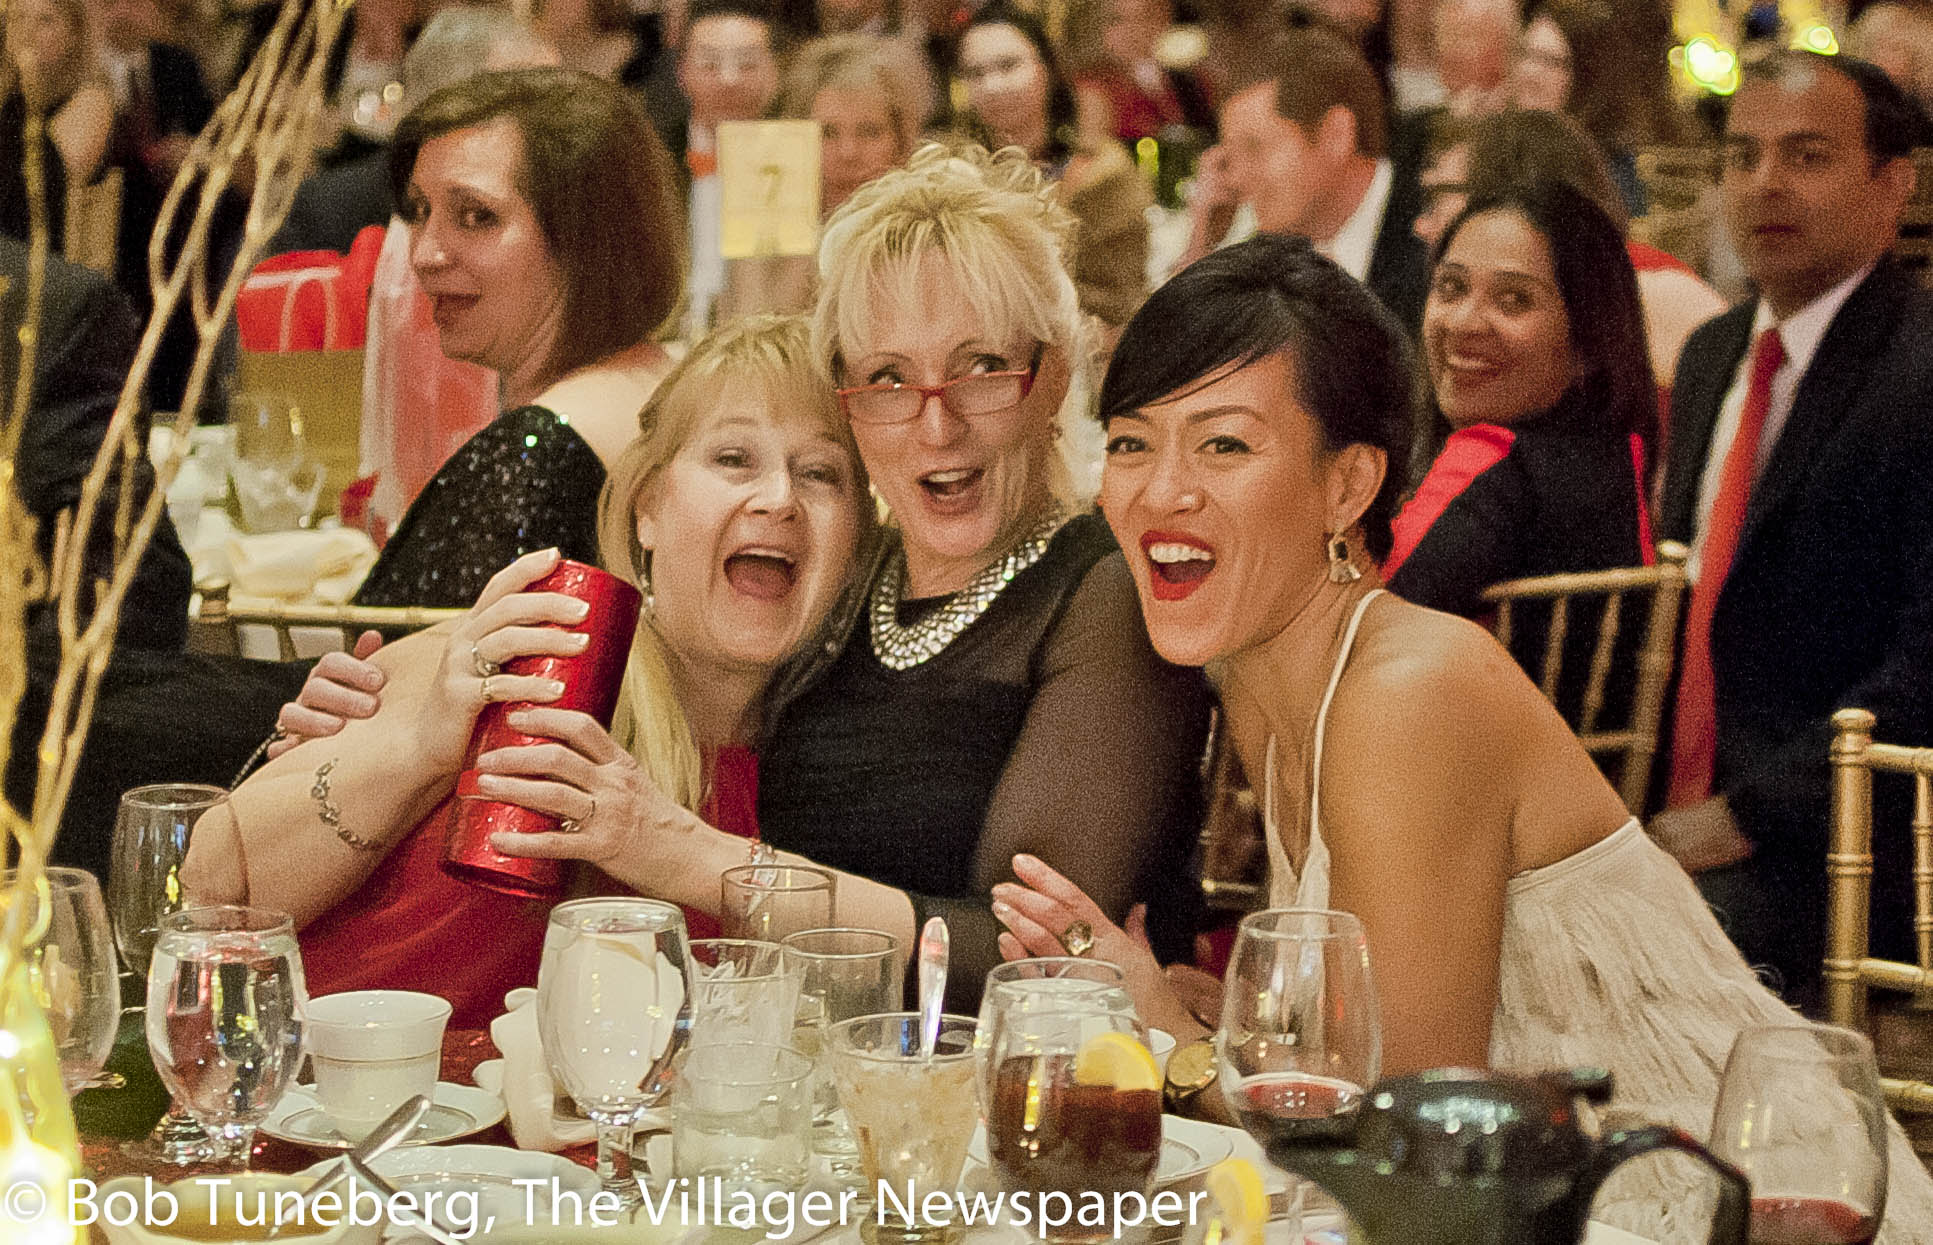 12th Annual Straight from the Heart Gala - The Villager